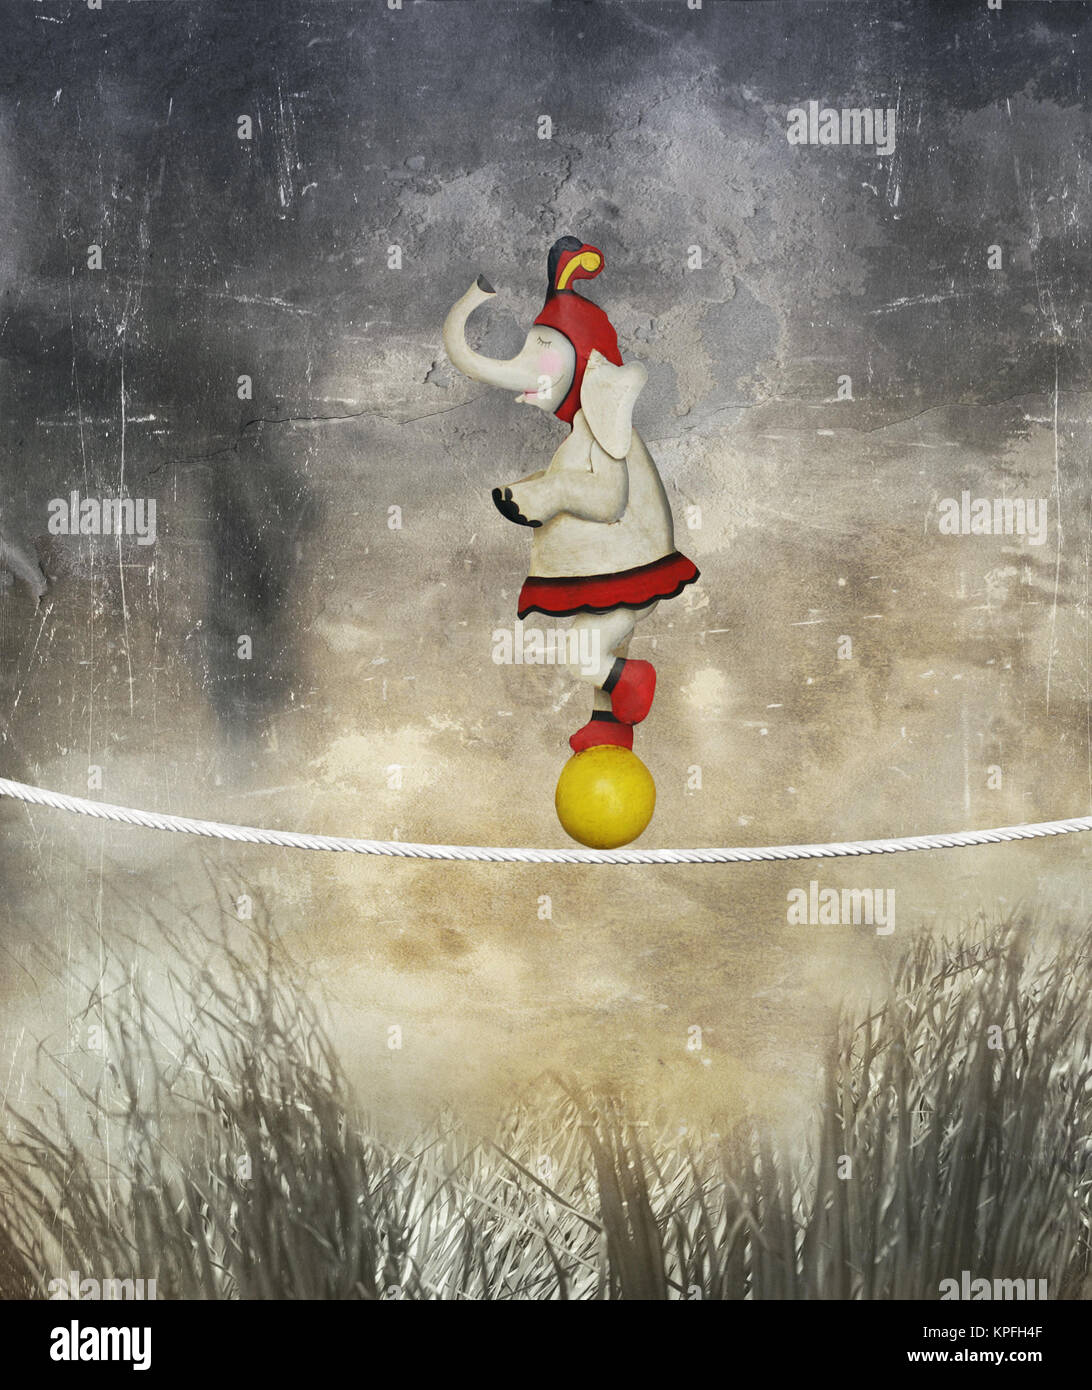 Illustrative funny female elephant dressed circus balancing on a rope and ball like an acrobat in a surreal landscape - Stock Image